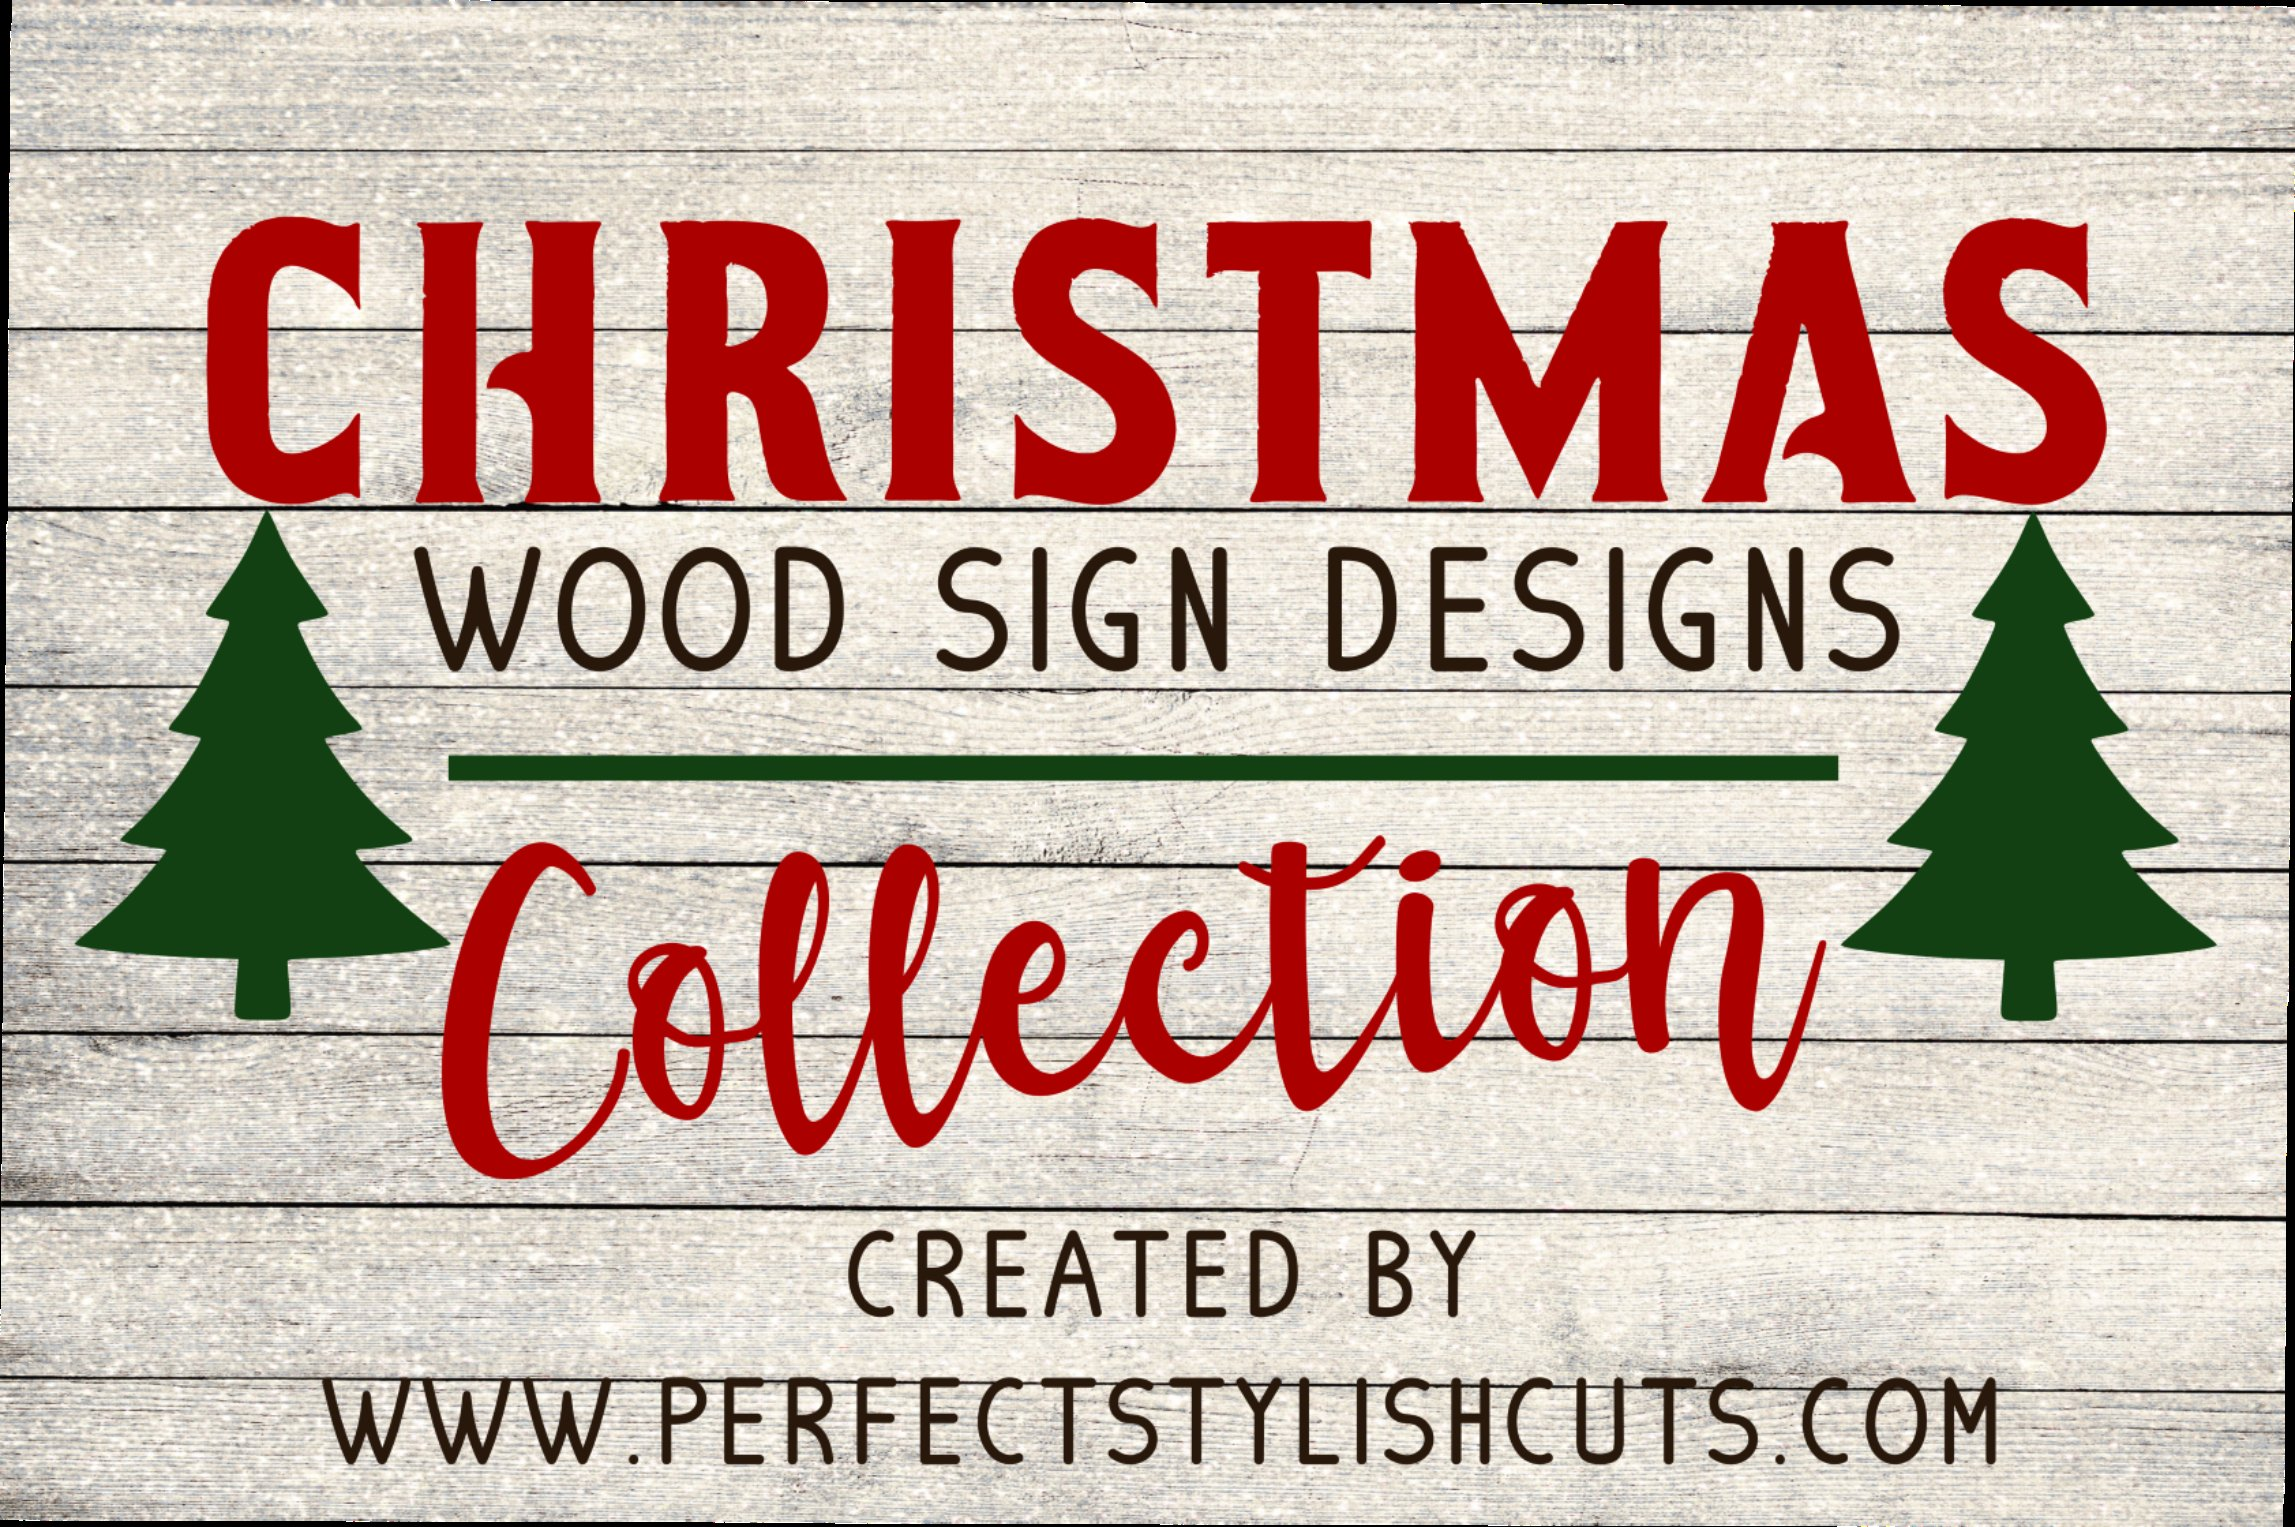 We provide a large selection of free svg files for silhouette, cricut and other cutting machines. Christmas Wood Sign Designs Collection Christmas Svg Files 28162 Svgs Design Bundles